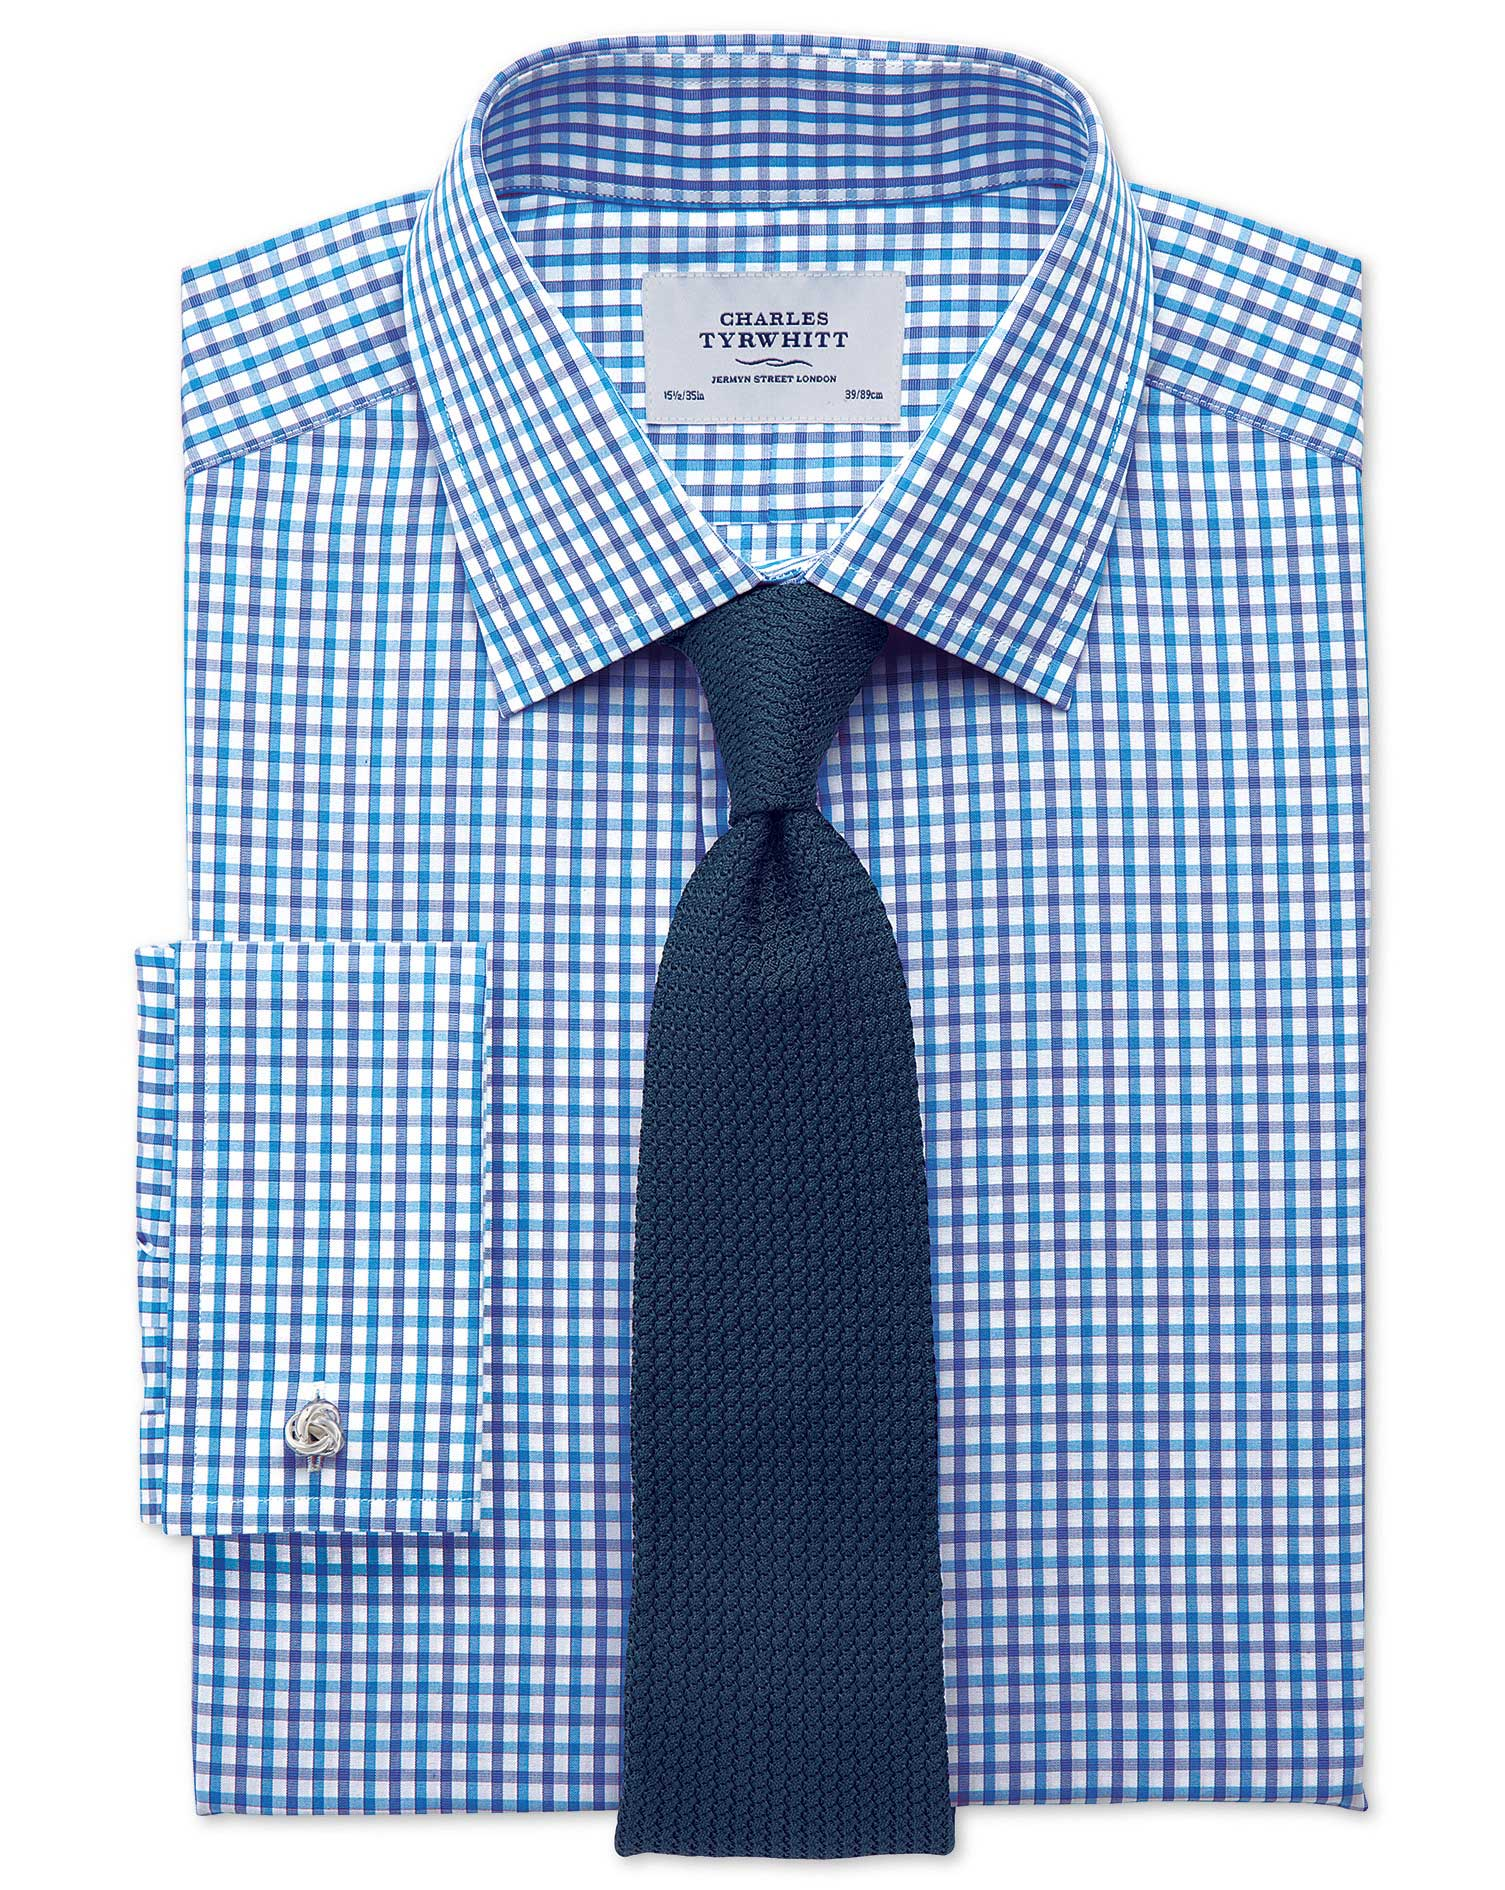 Extra Slim Fit Two Colour Check Blue Cotton Formal Shirt Single Cuff Size 16.5/35 by Charles Tyrwhit